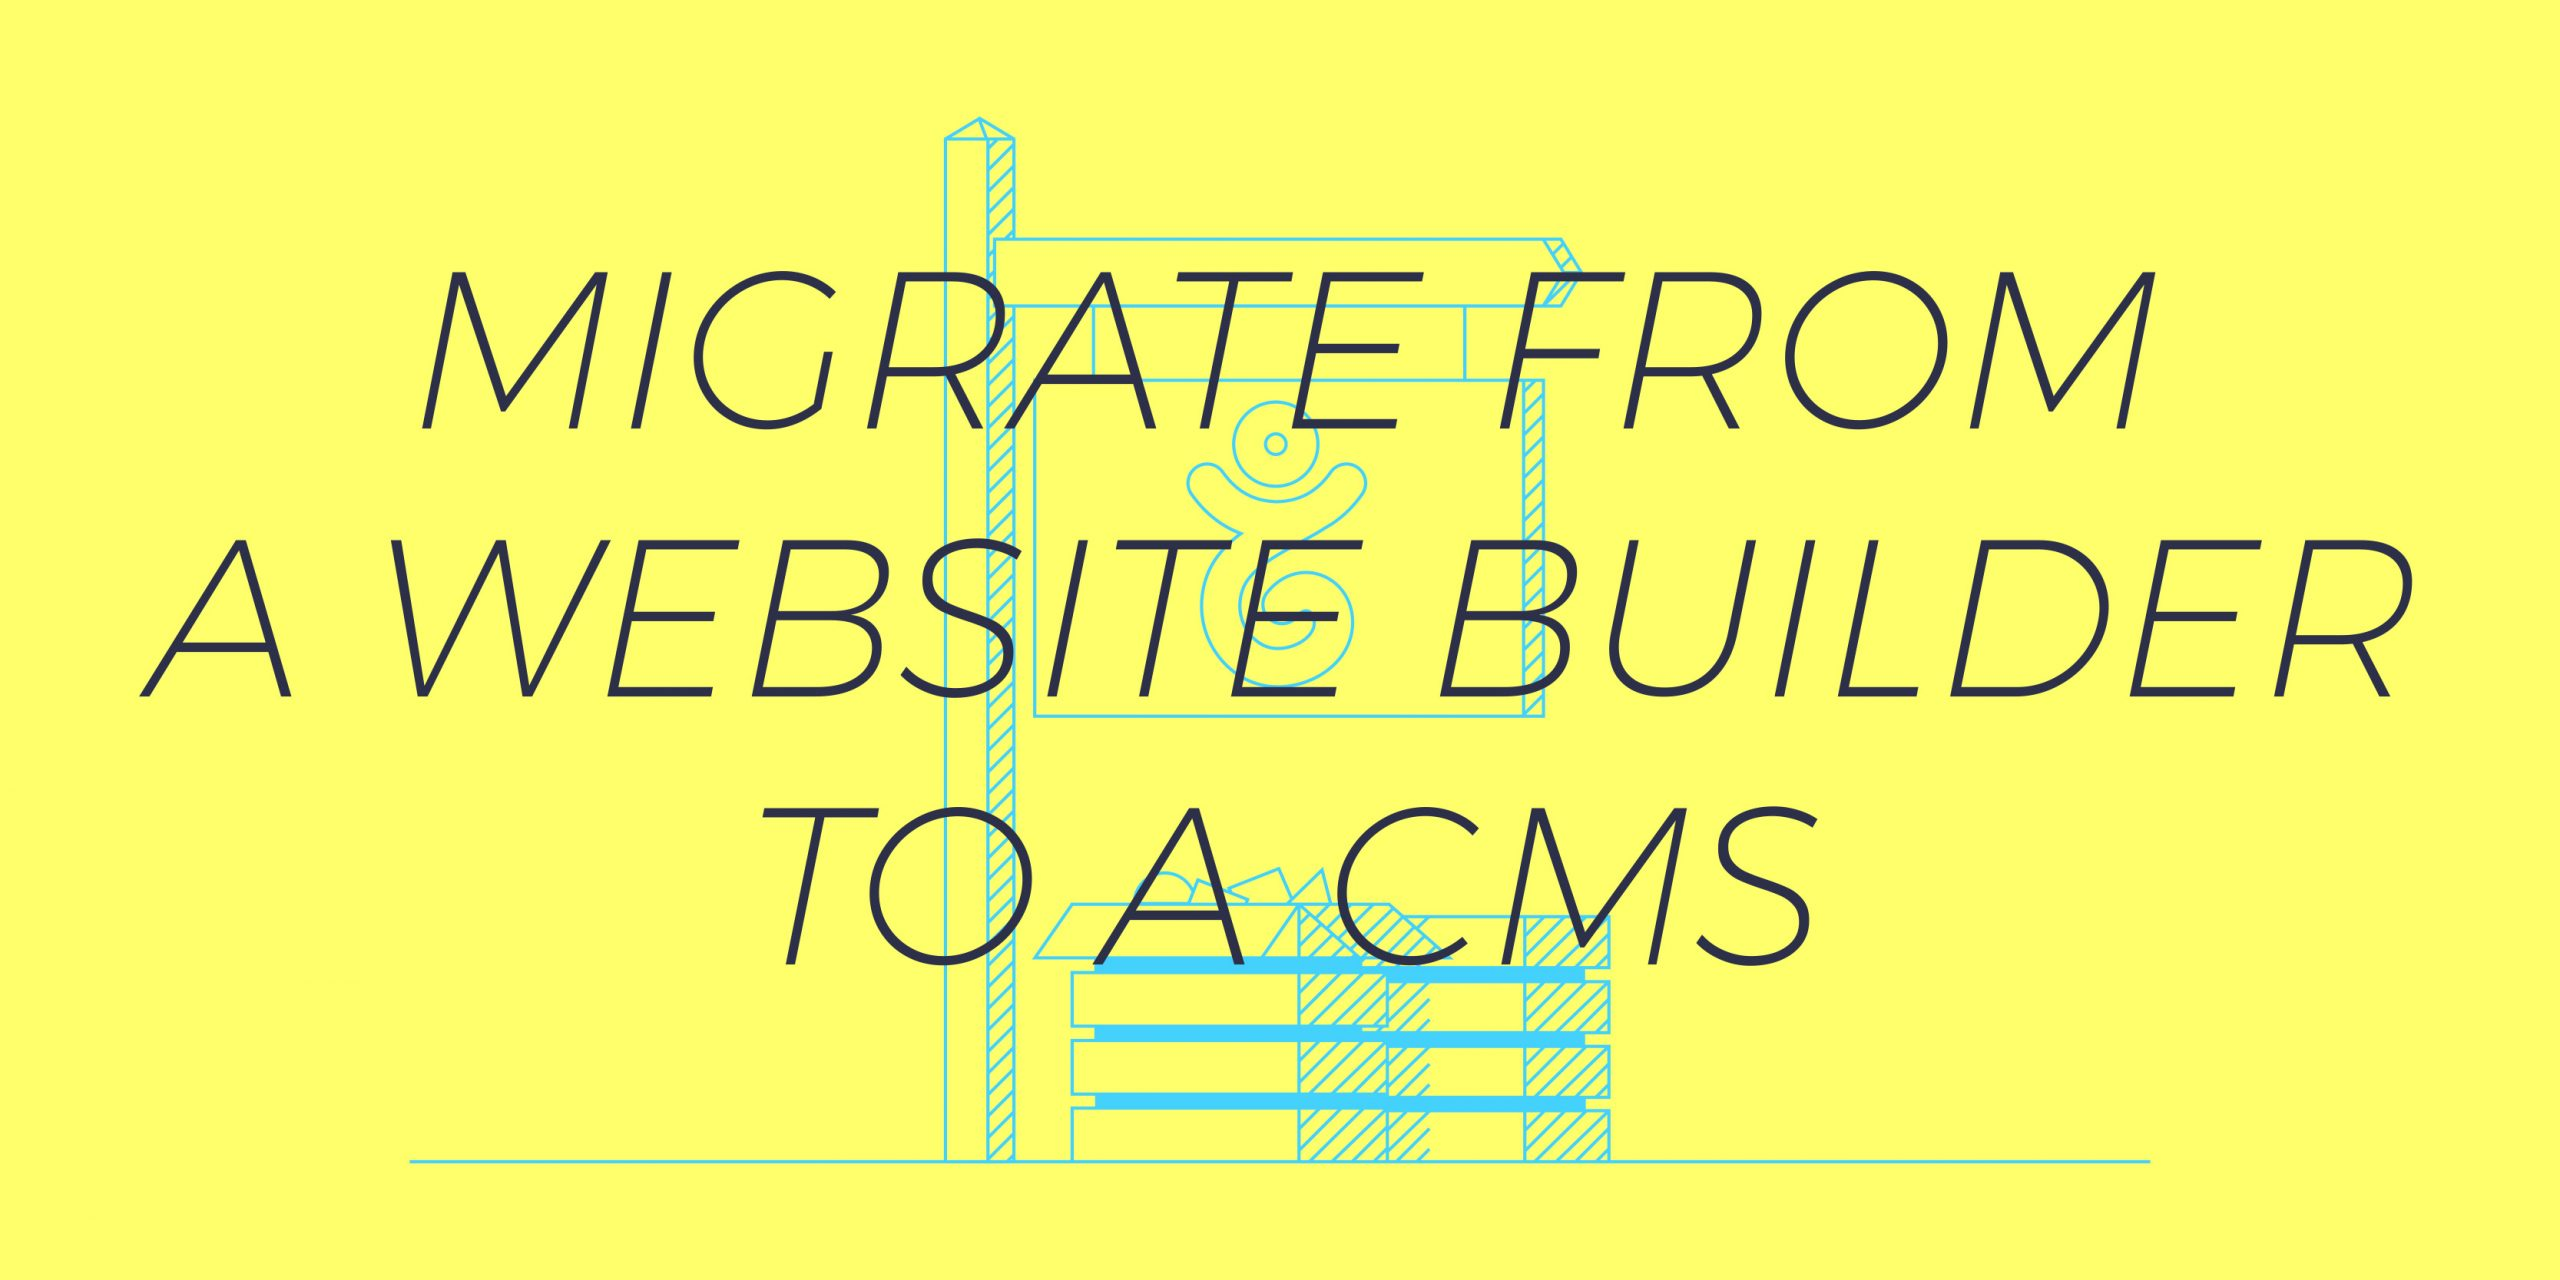 How to migrate from a website builder to a CMS